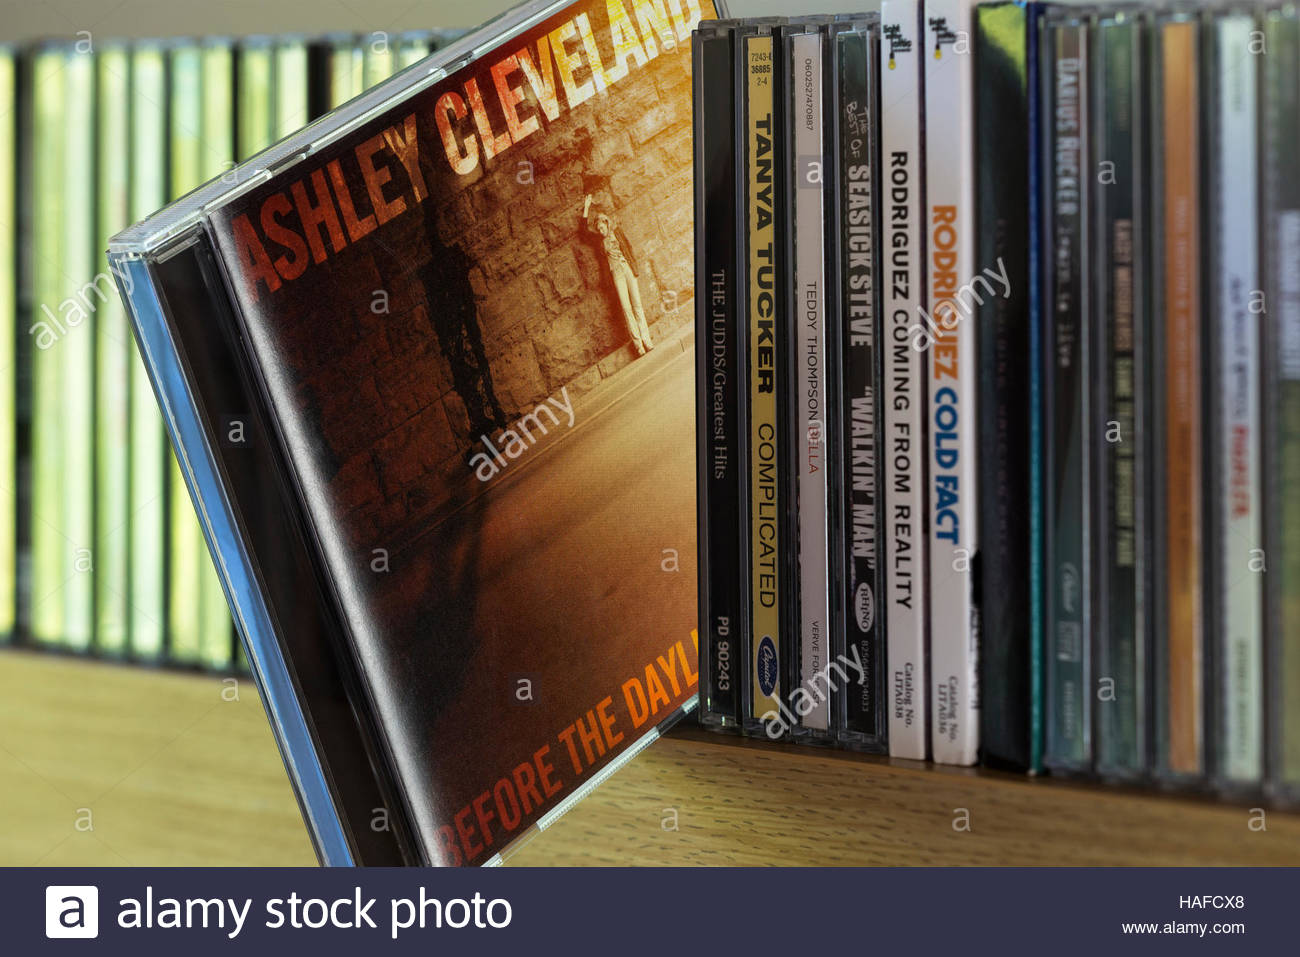 Before the Daylight's Shot, 2006 Ashley Cleveland CD pulled out from among other CD's on a shelf - Stock Image